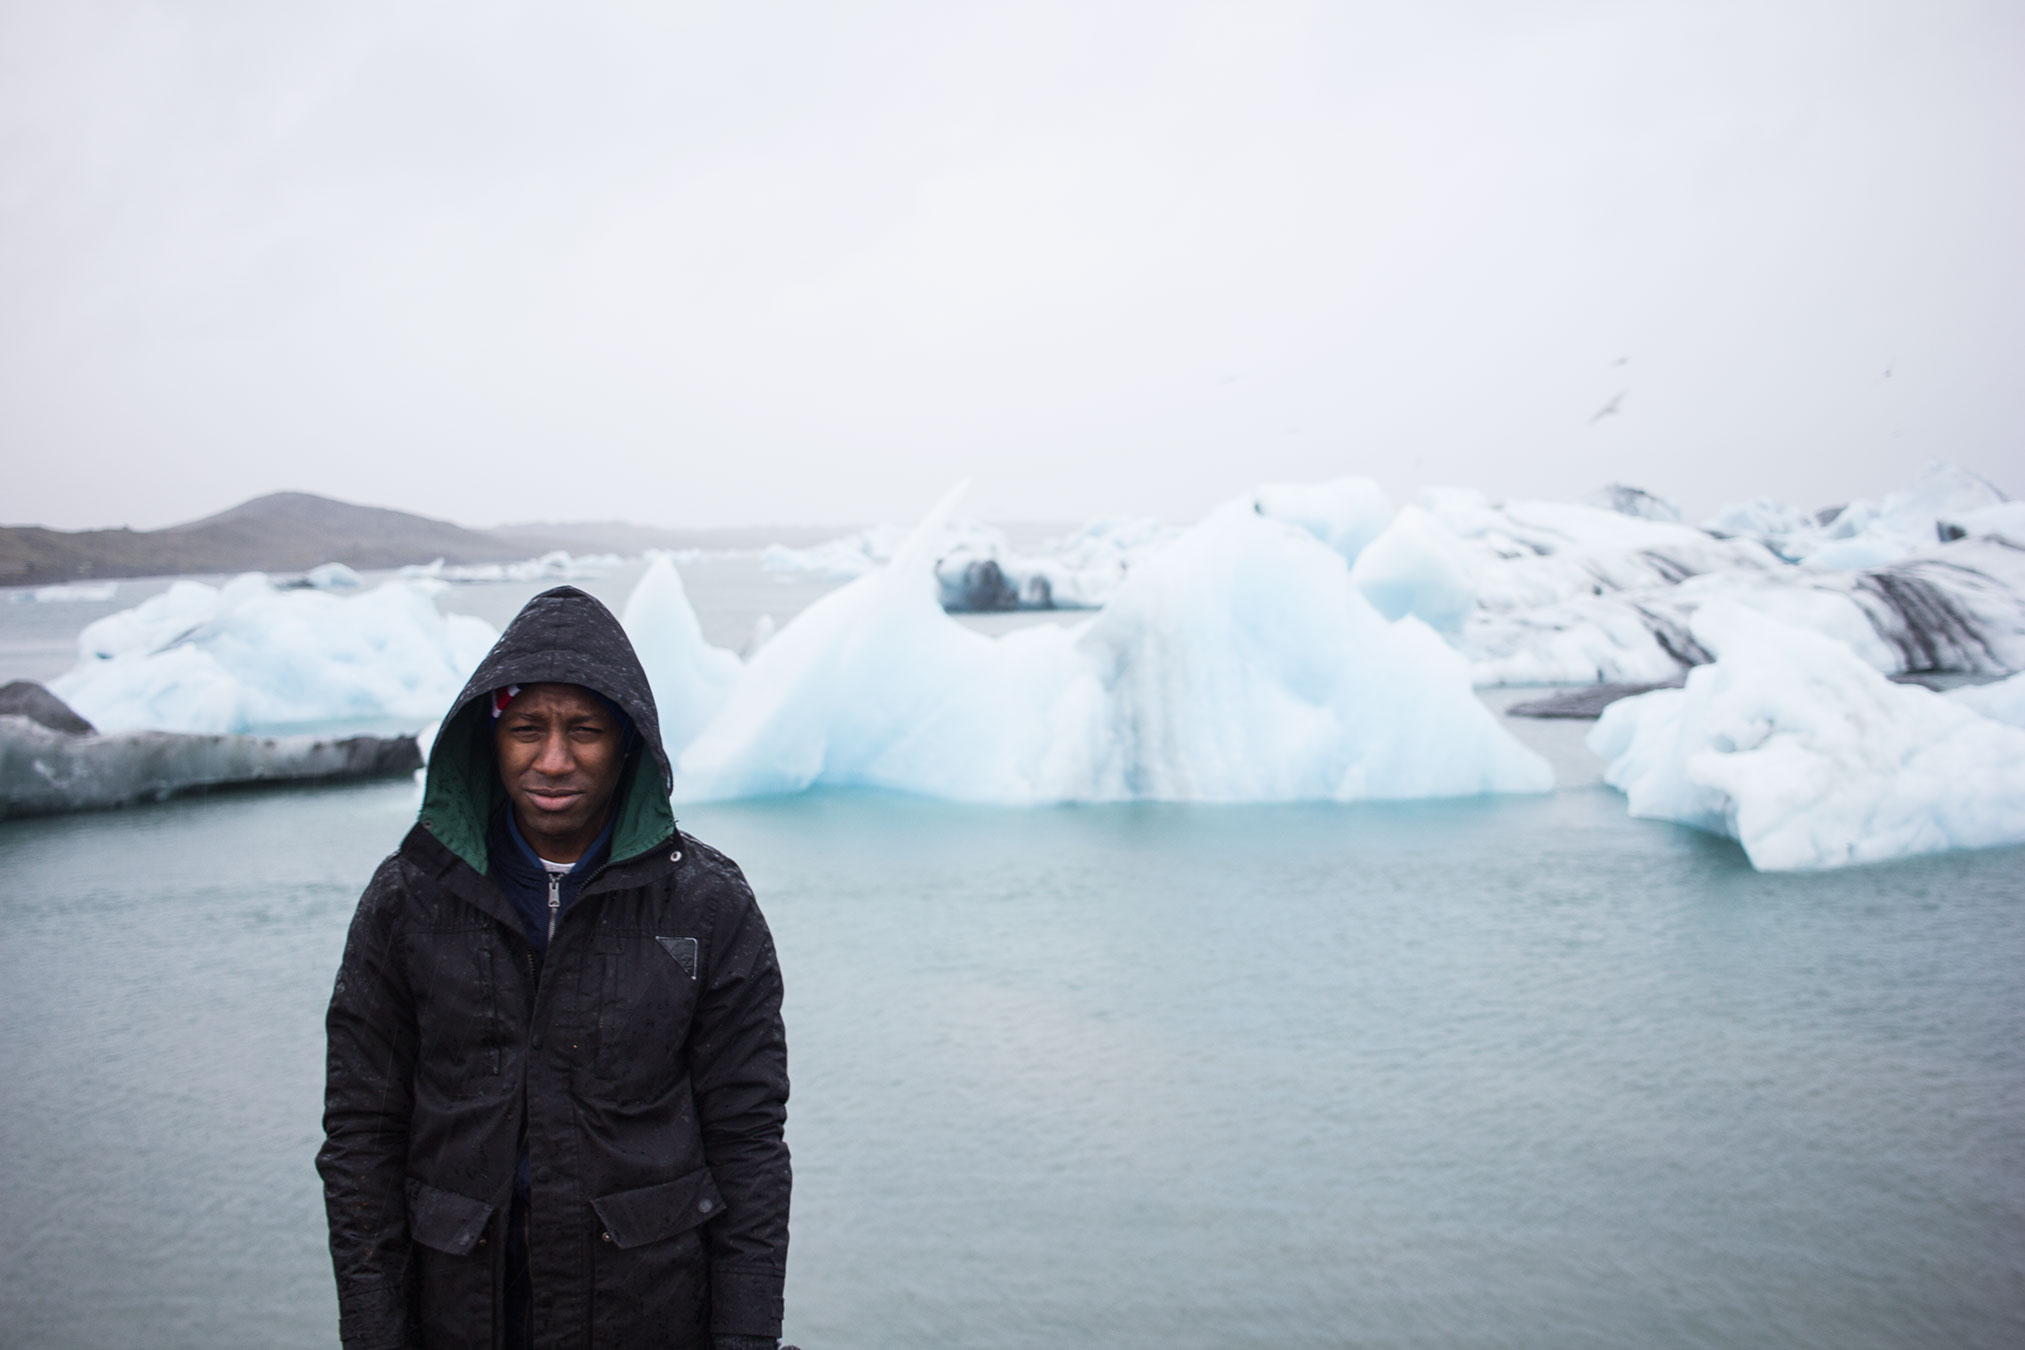 calvin-walker-bad-weather-glaciers-iceland.jpg